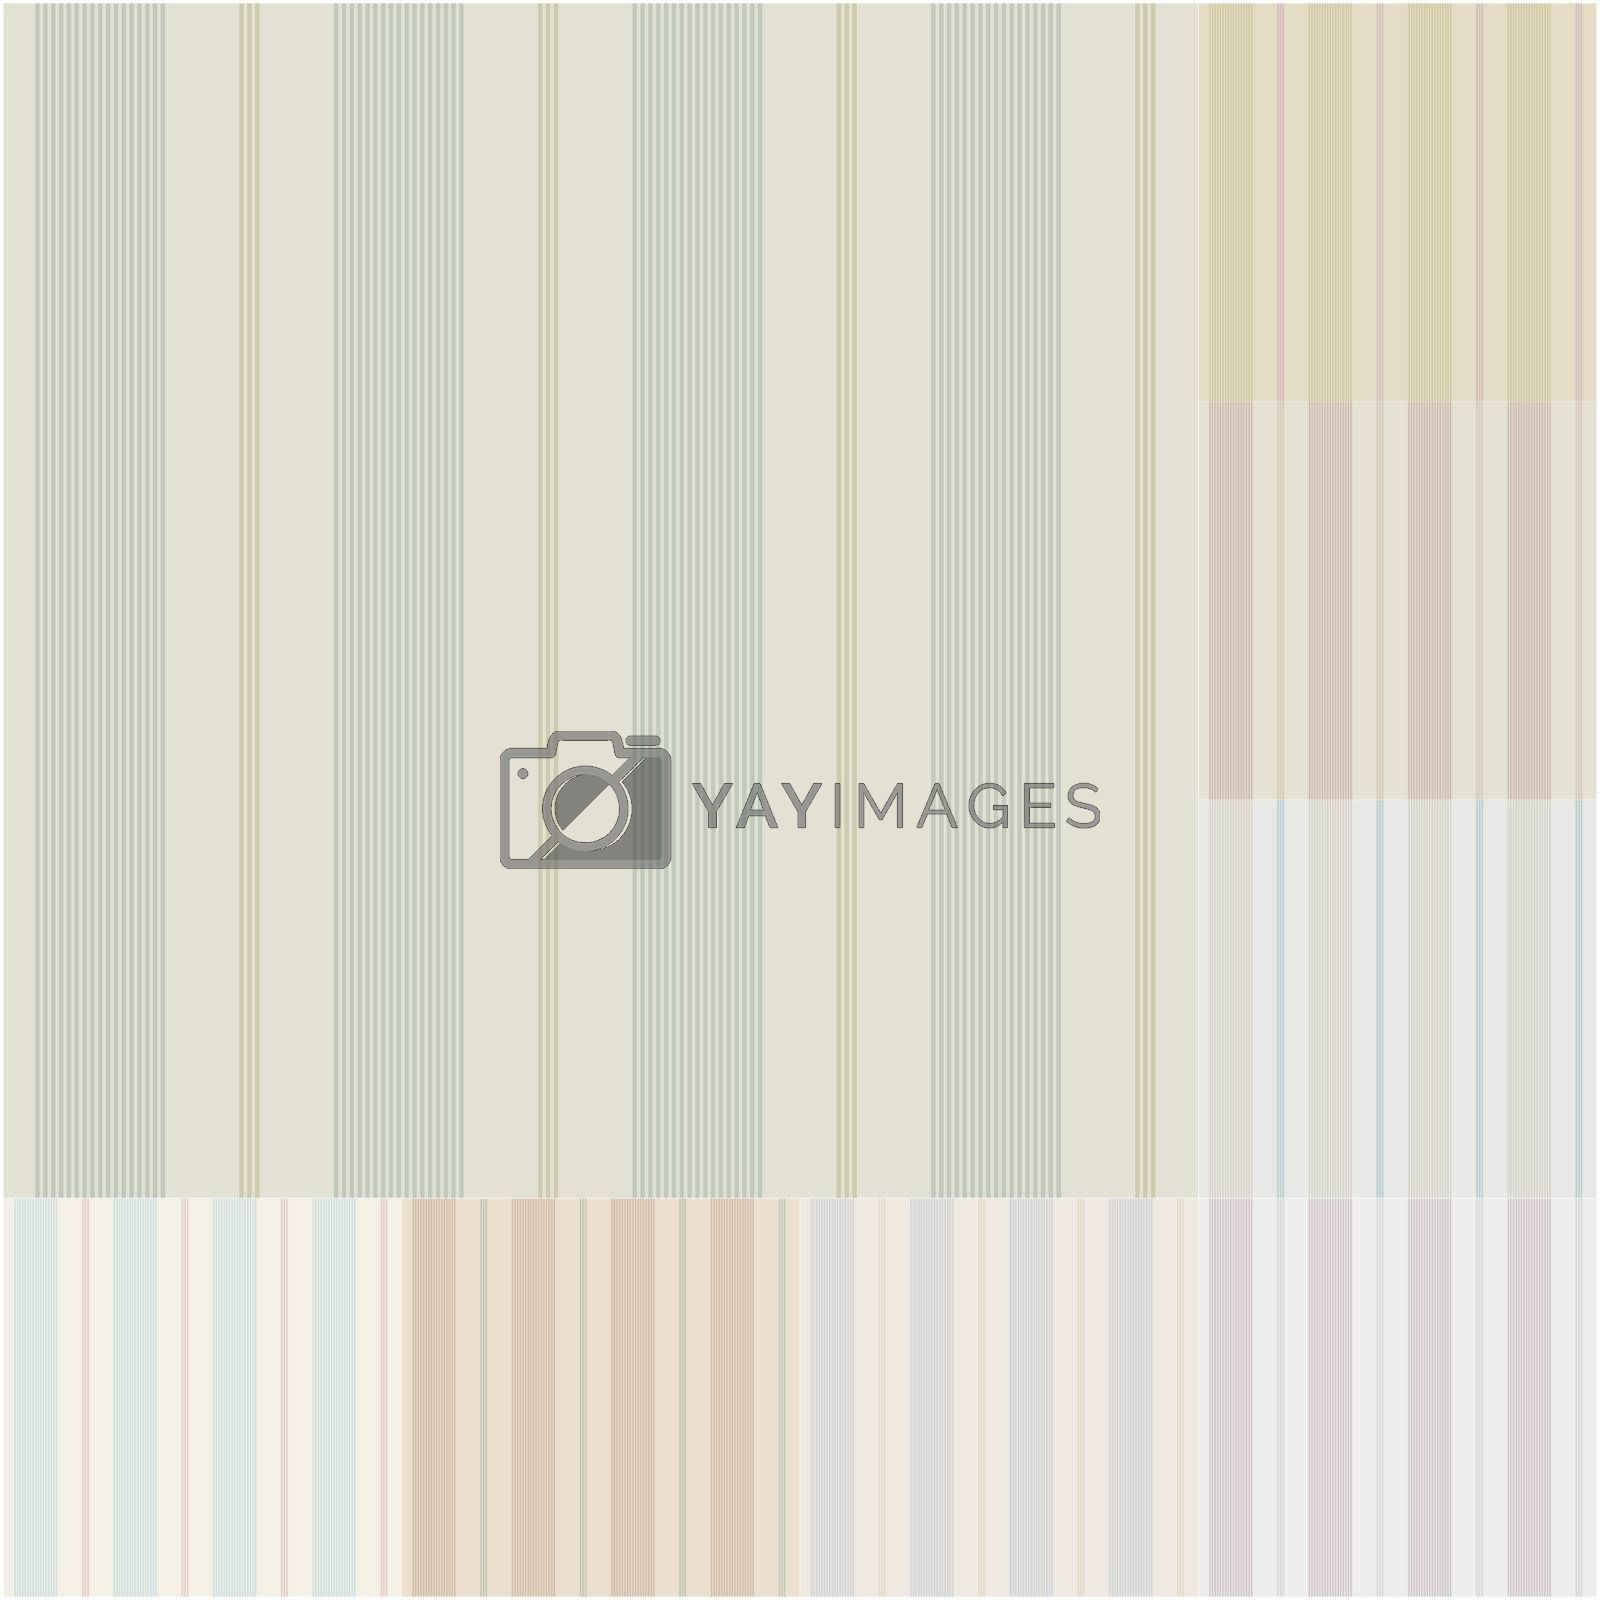 seamless vertical stripes pattern